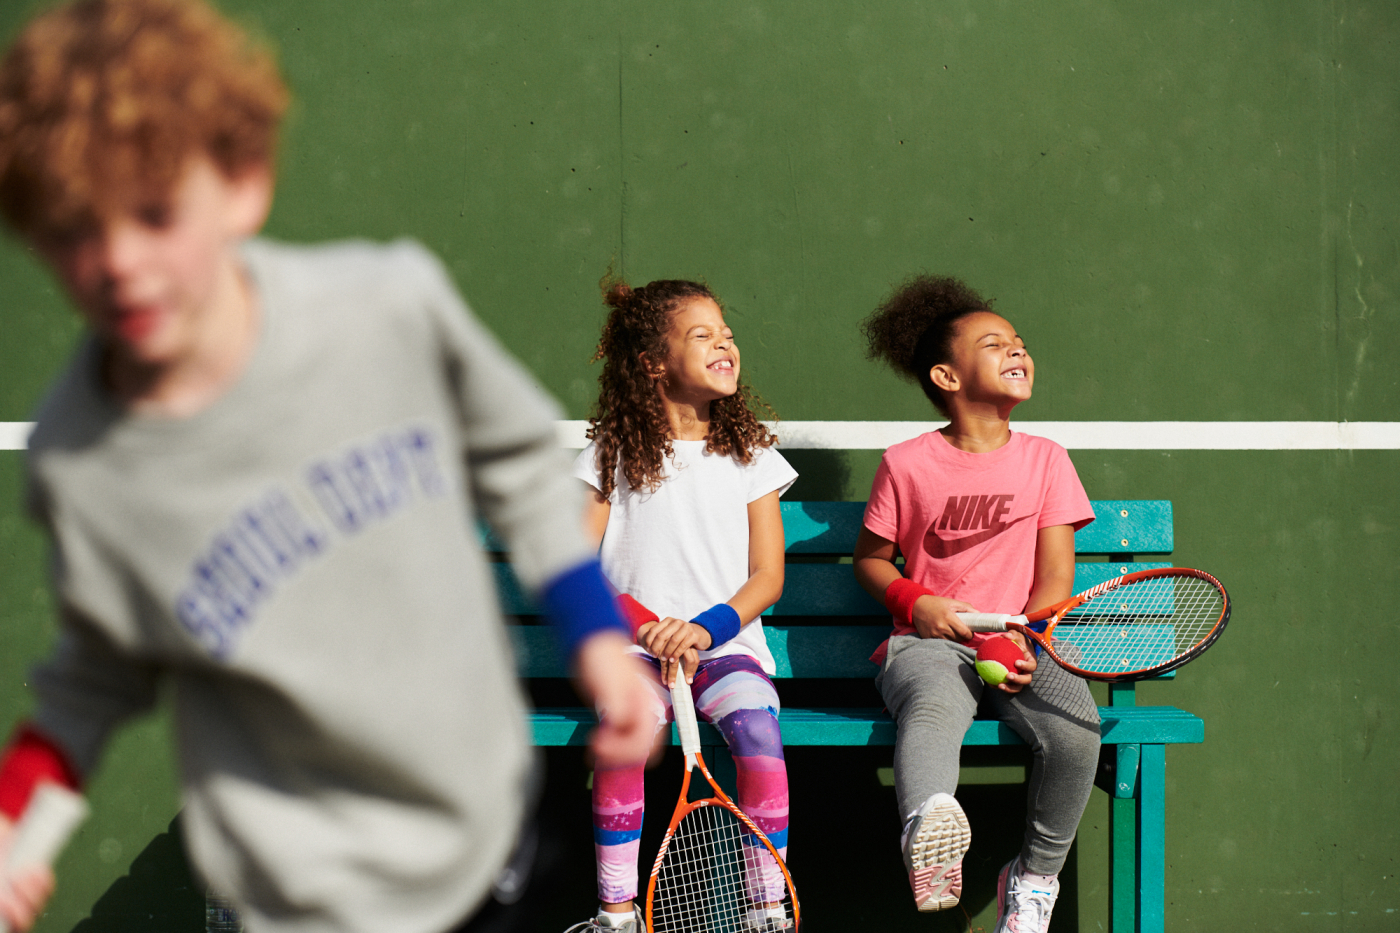 Dominic Marley Lawn tennis Association campaign